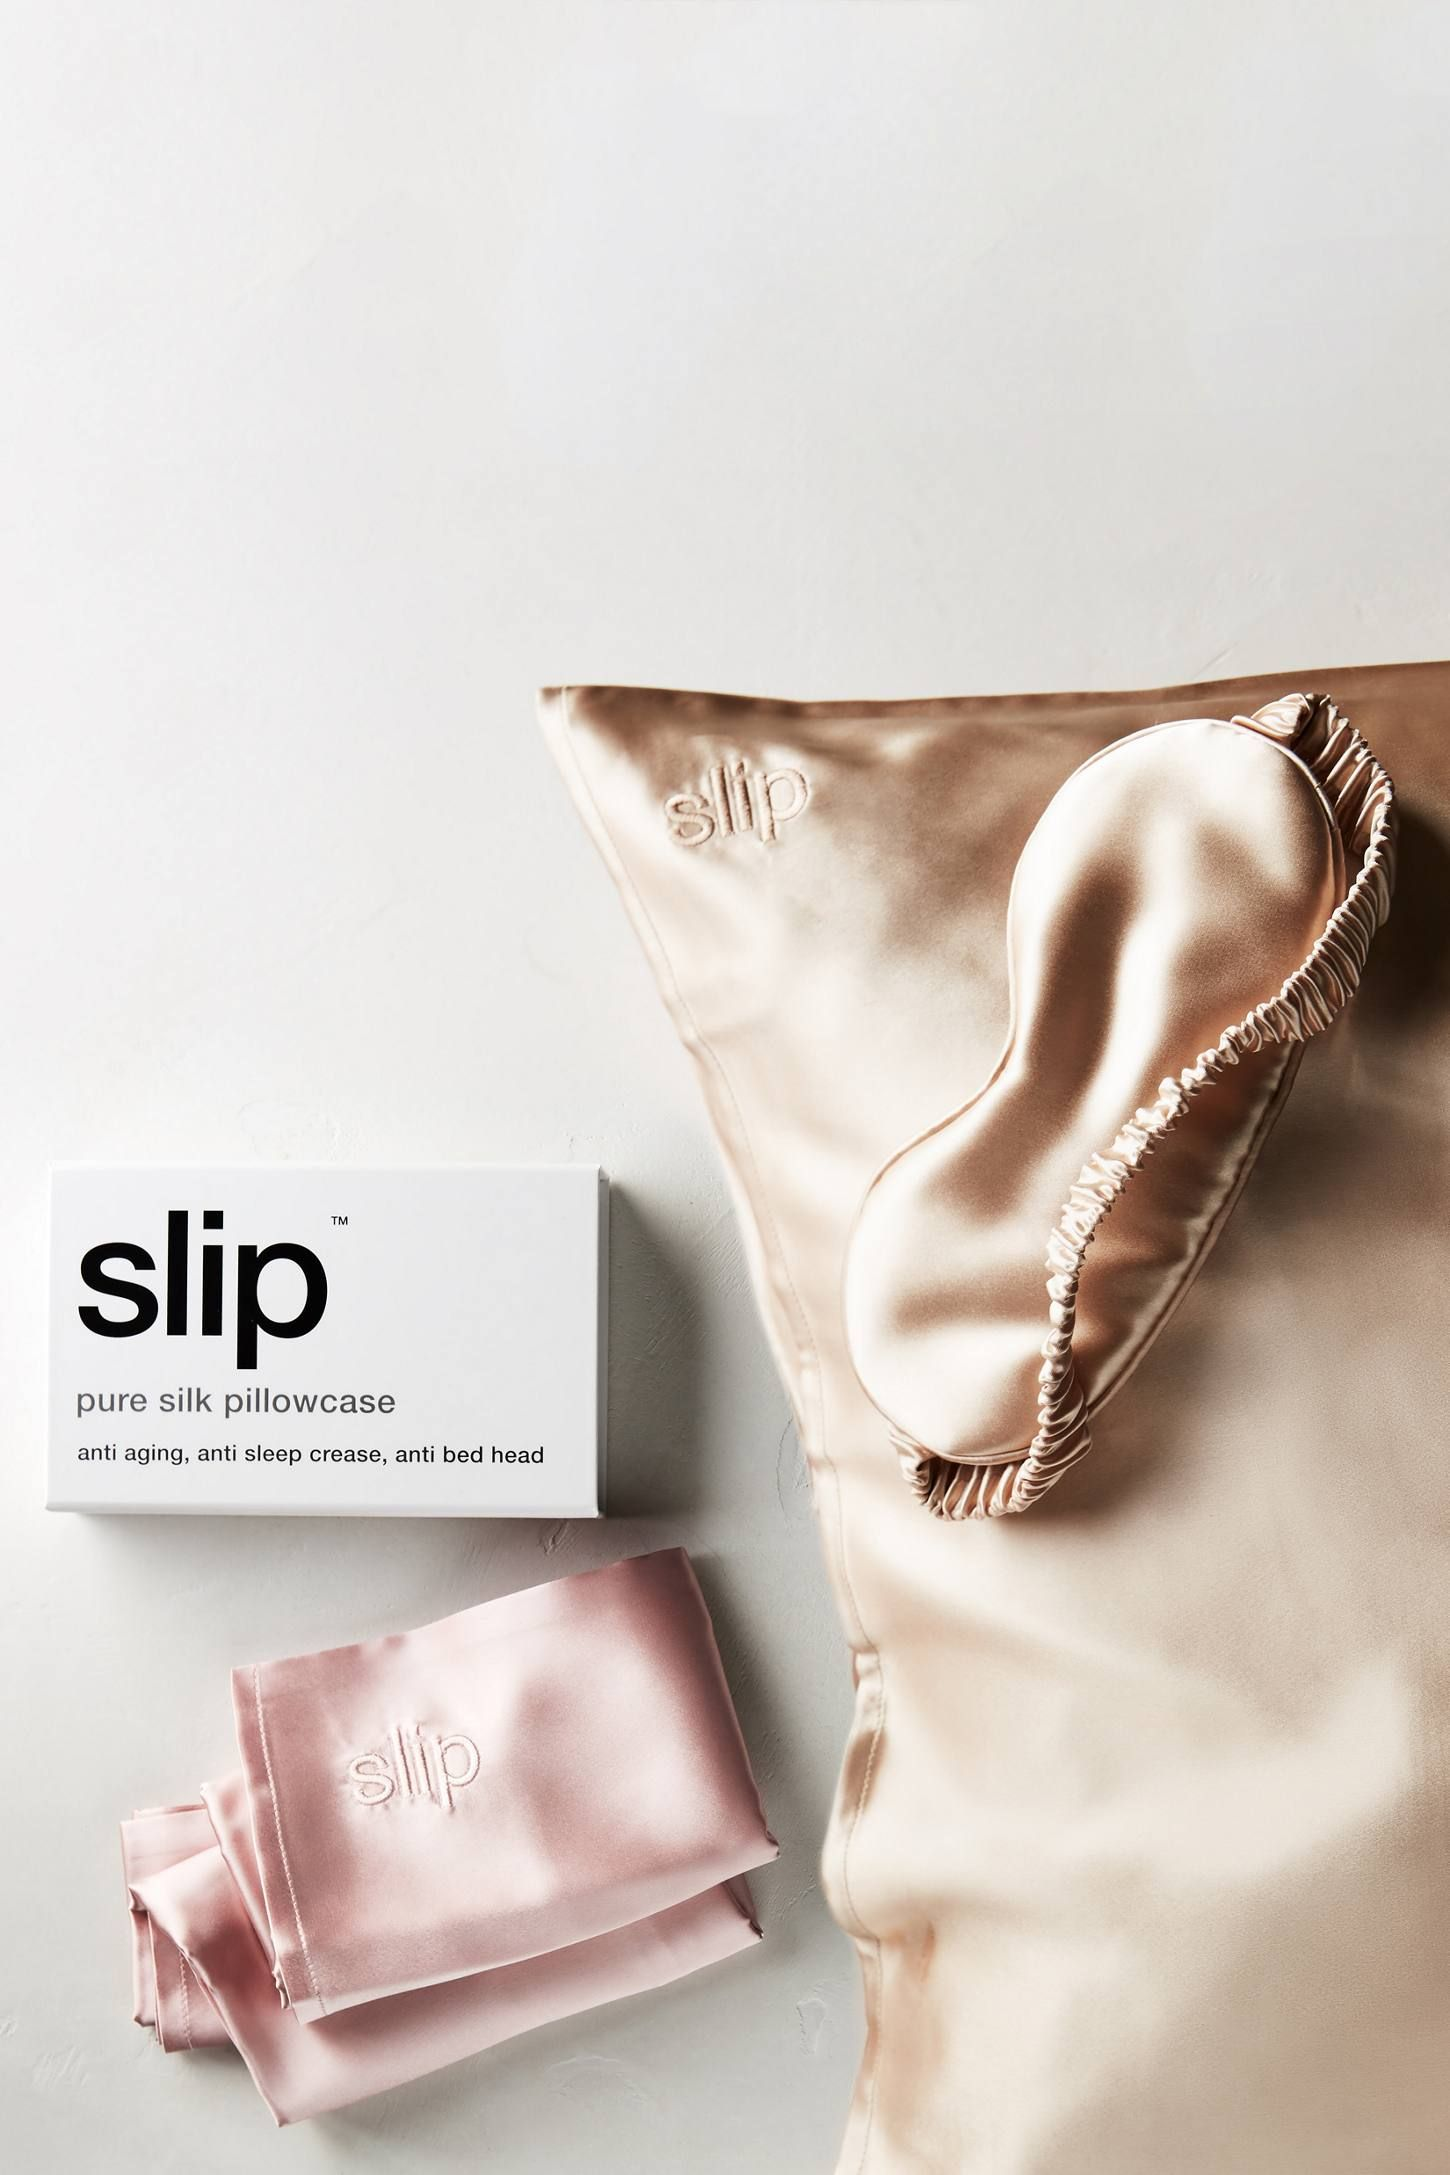 Slip Pillowcase Slip Silk Sleep Mask Need Silk Pillow Cases Slip On